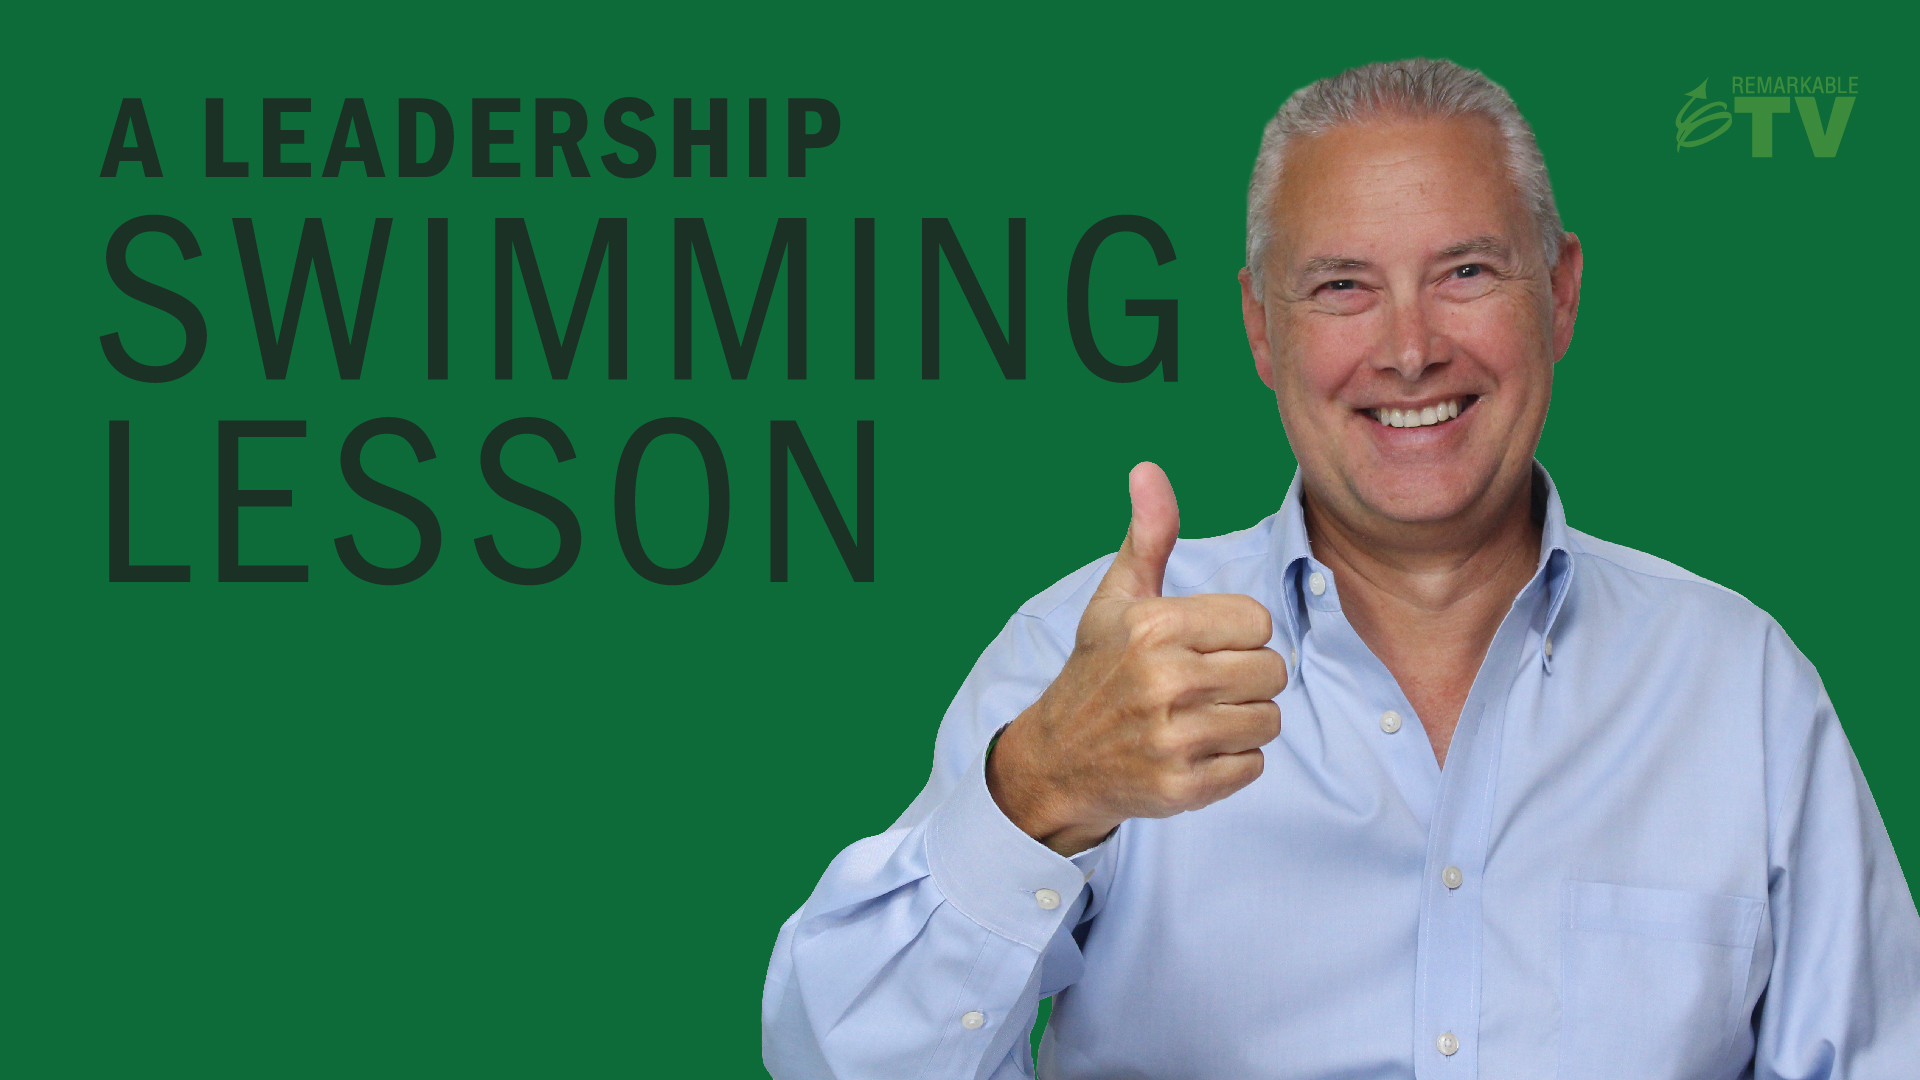 A Leadership Swimming Lesson - Thoughts from Kevin show art